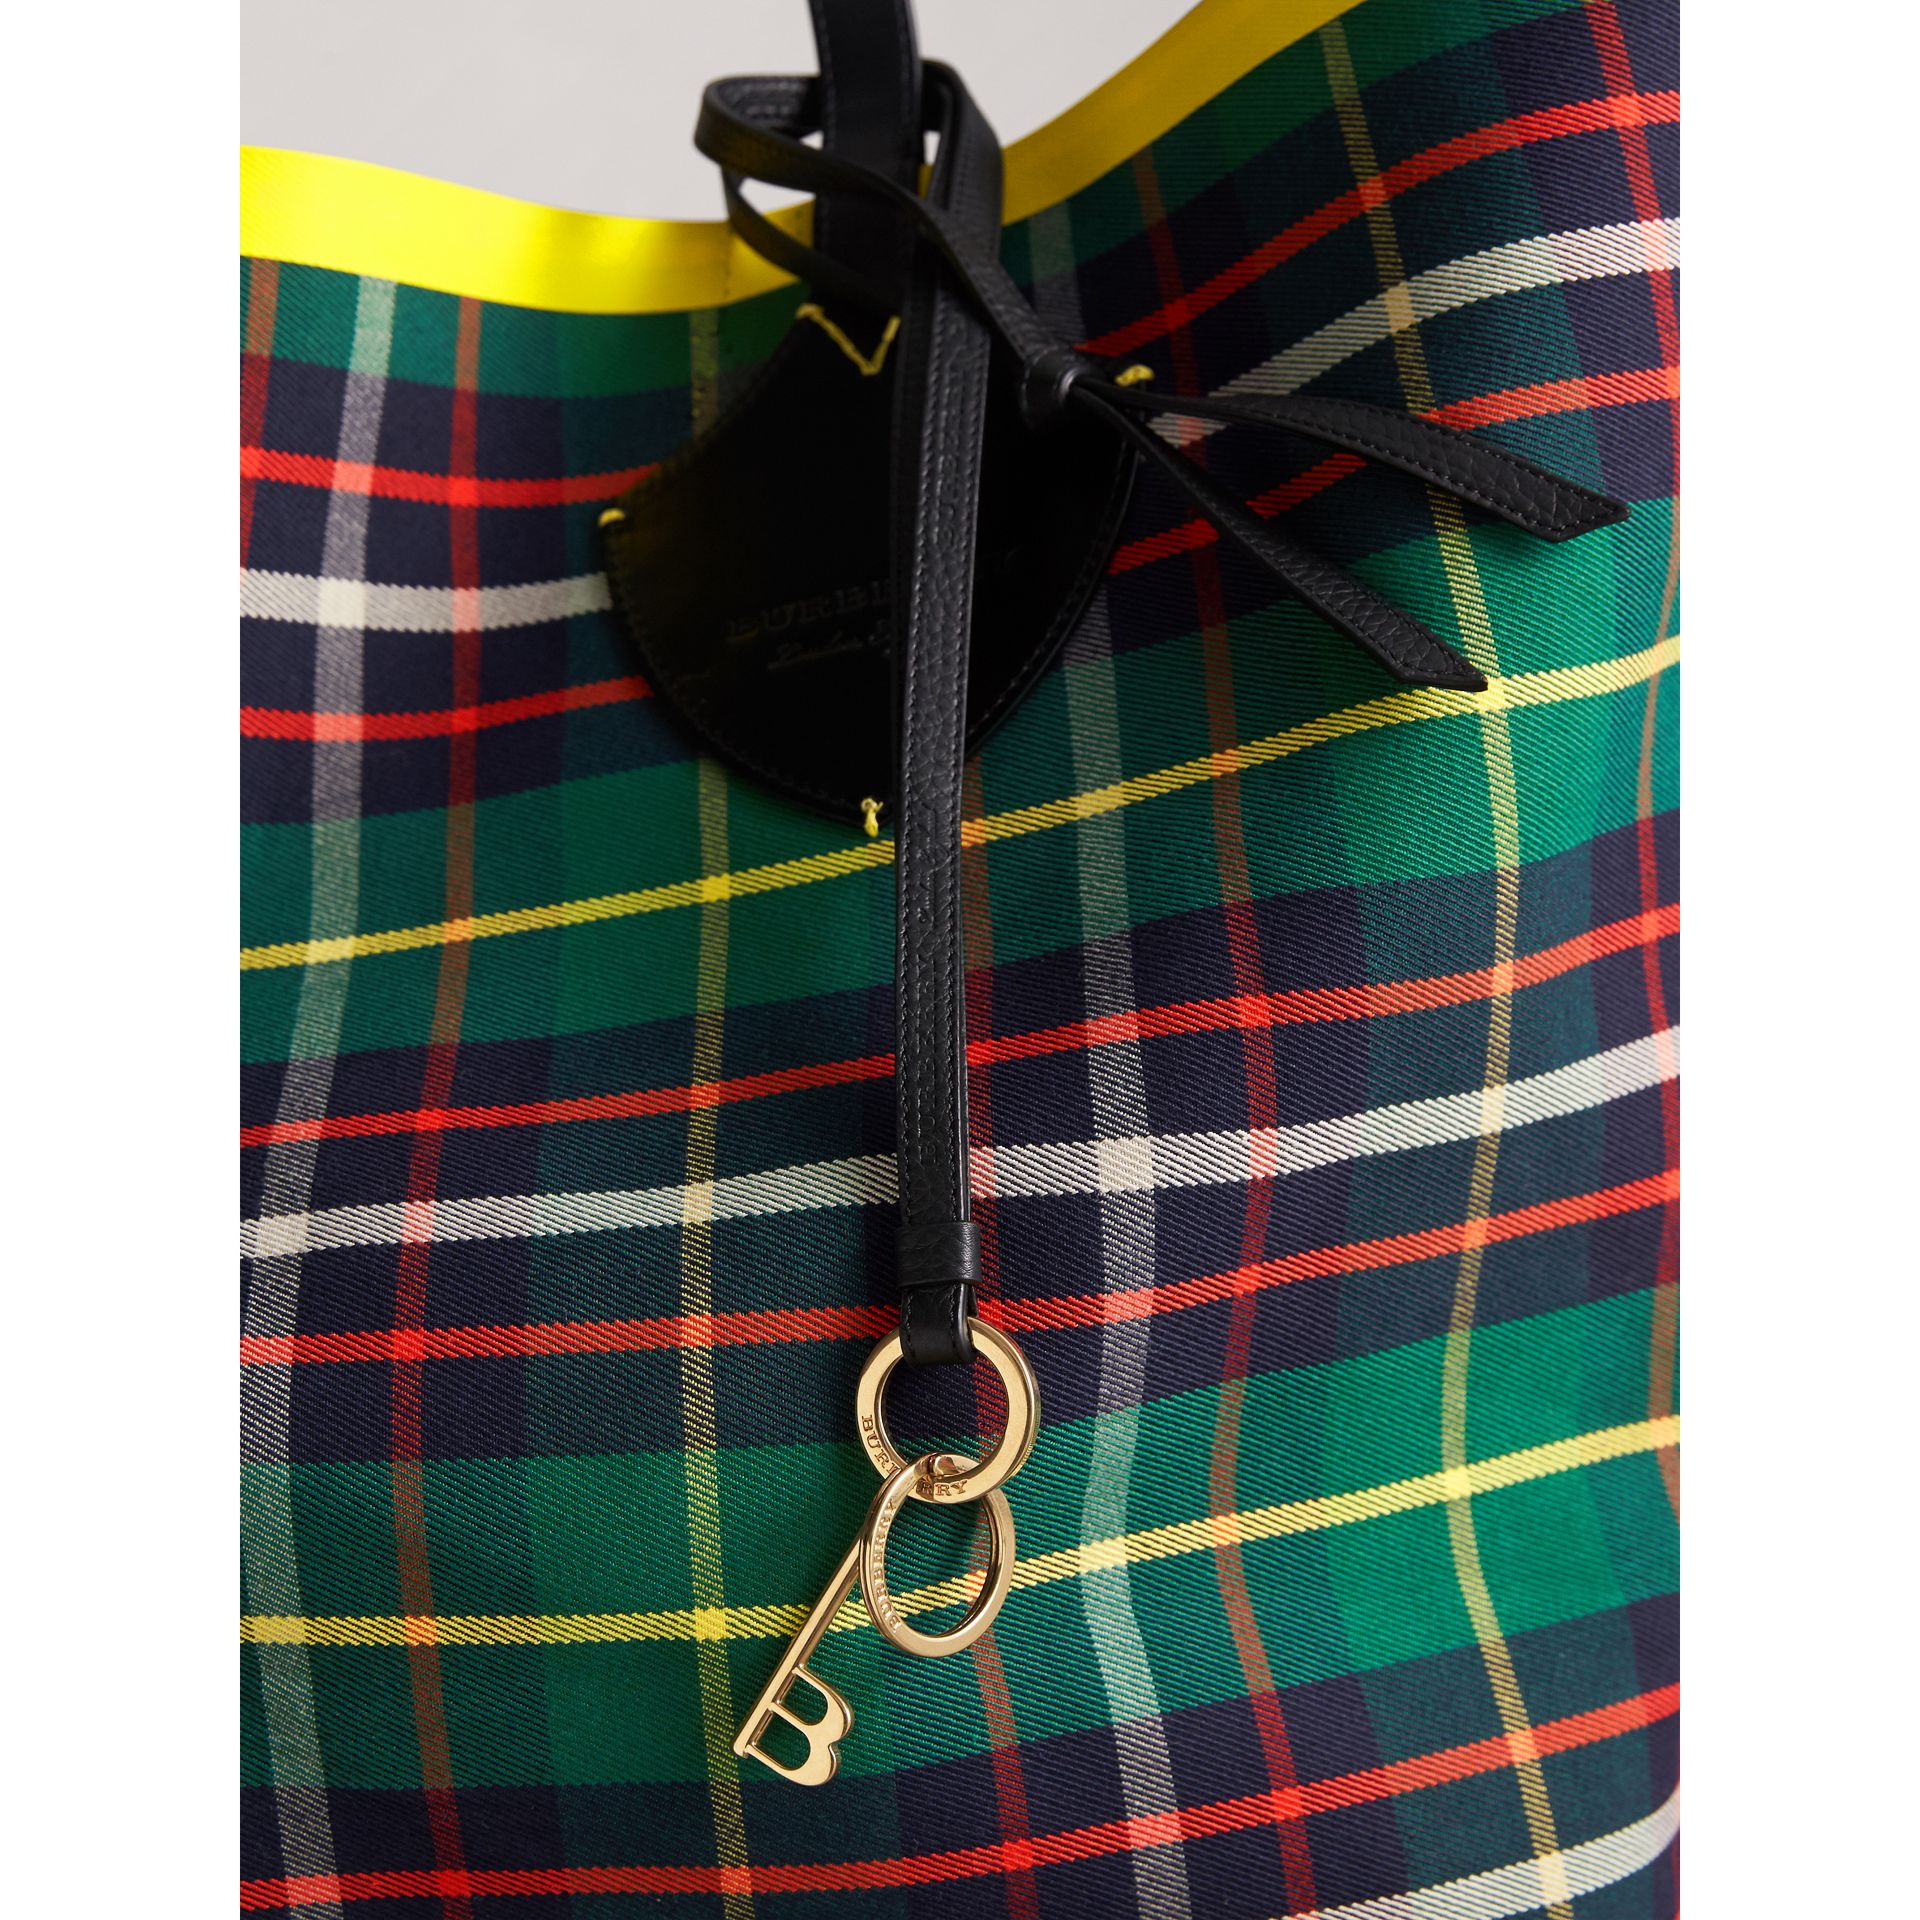 Burberry Motif Metal and Leather Strap Key Charm in Black - Women | Burberry - gallery image 2